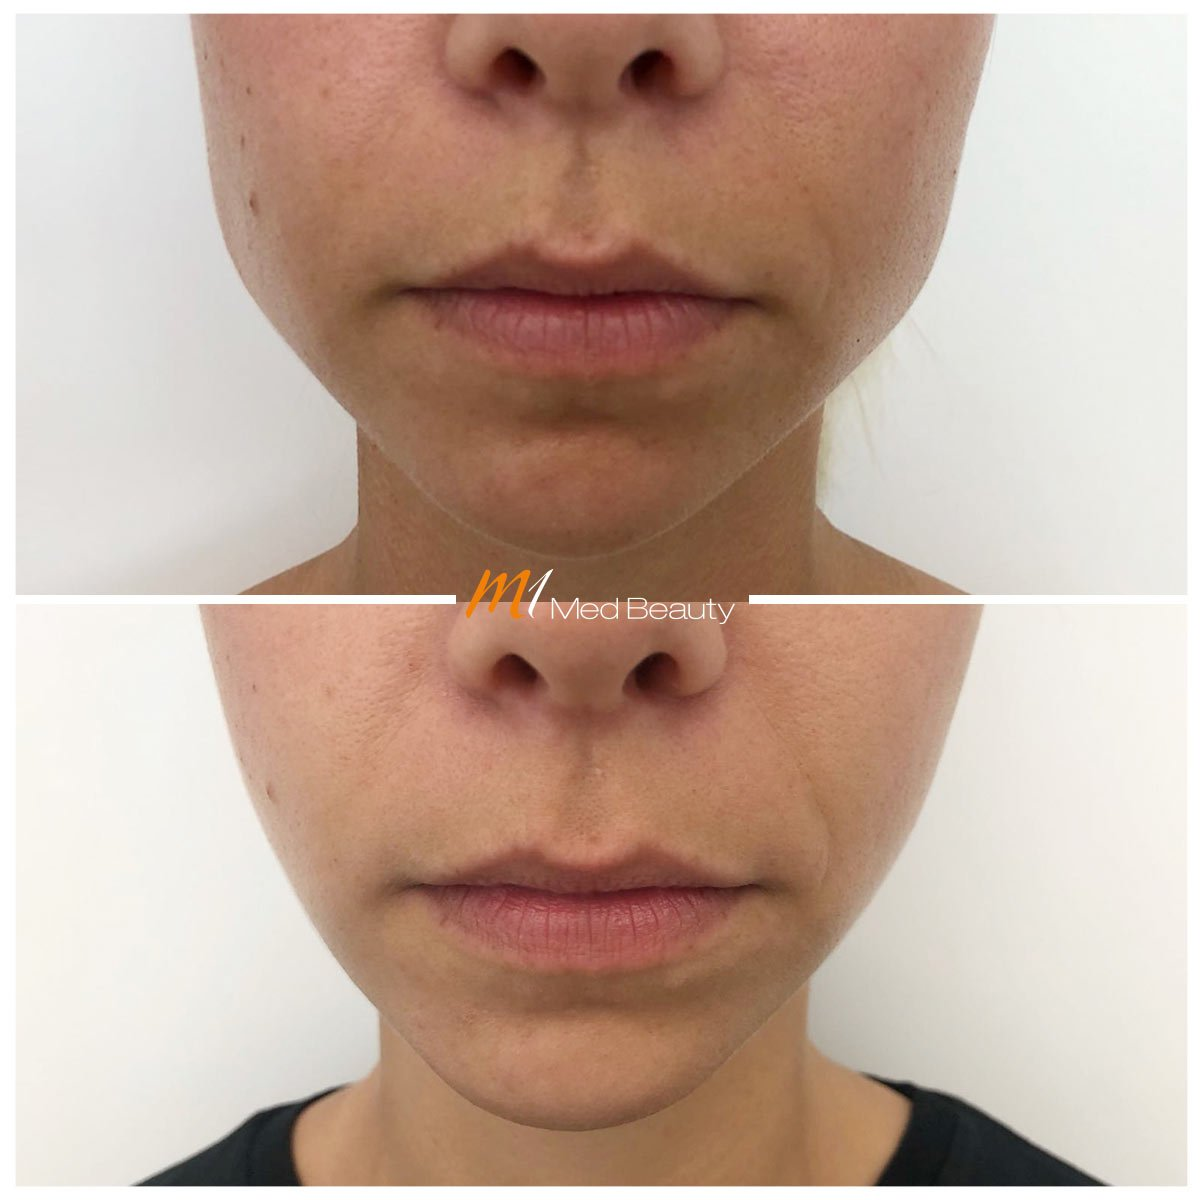 facial slimming with muscle relaxans at M1 Med Beauty